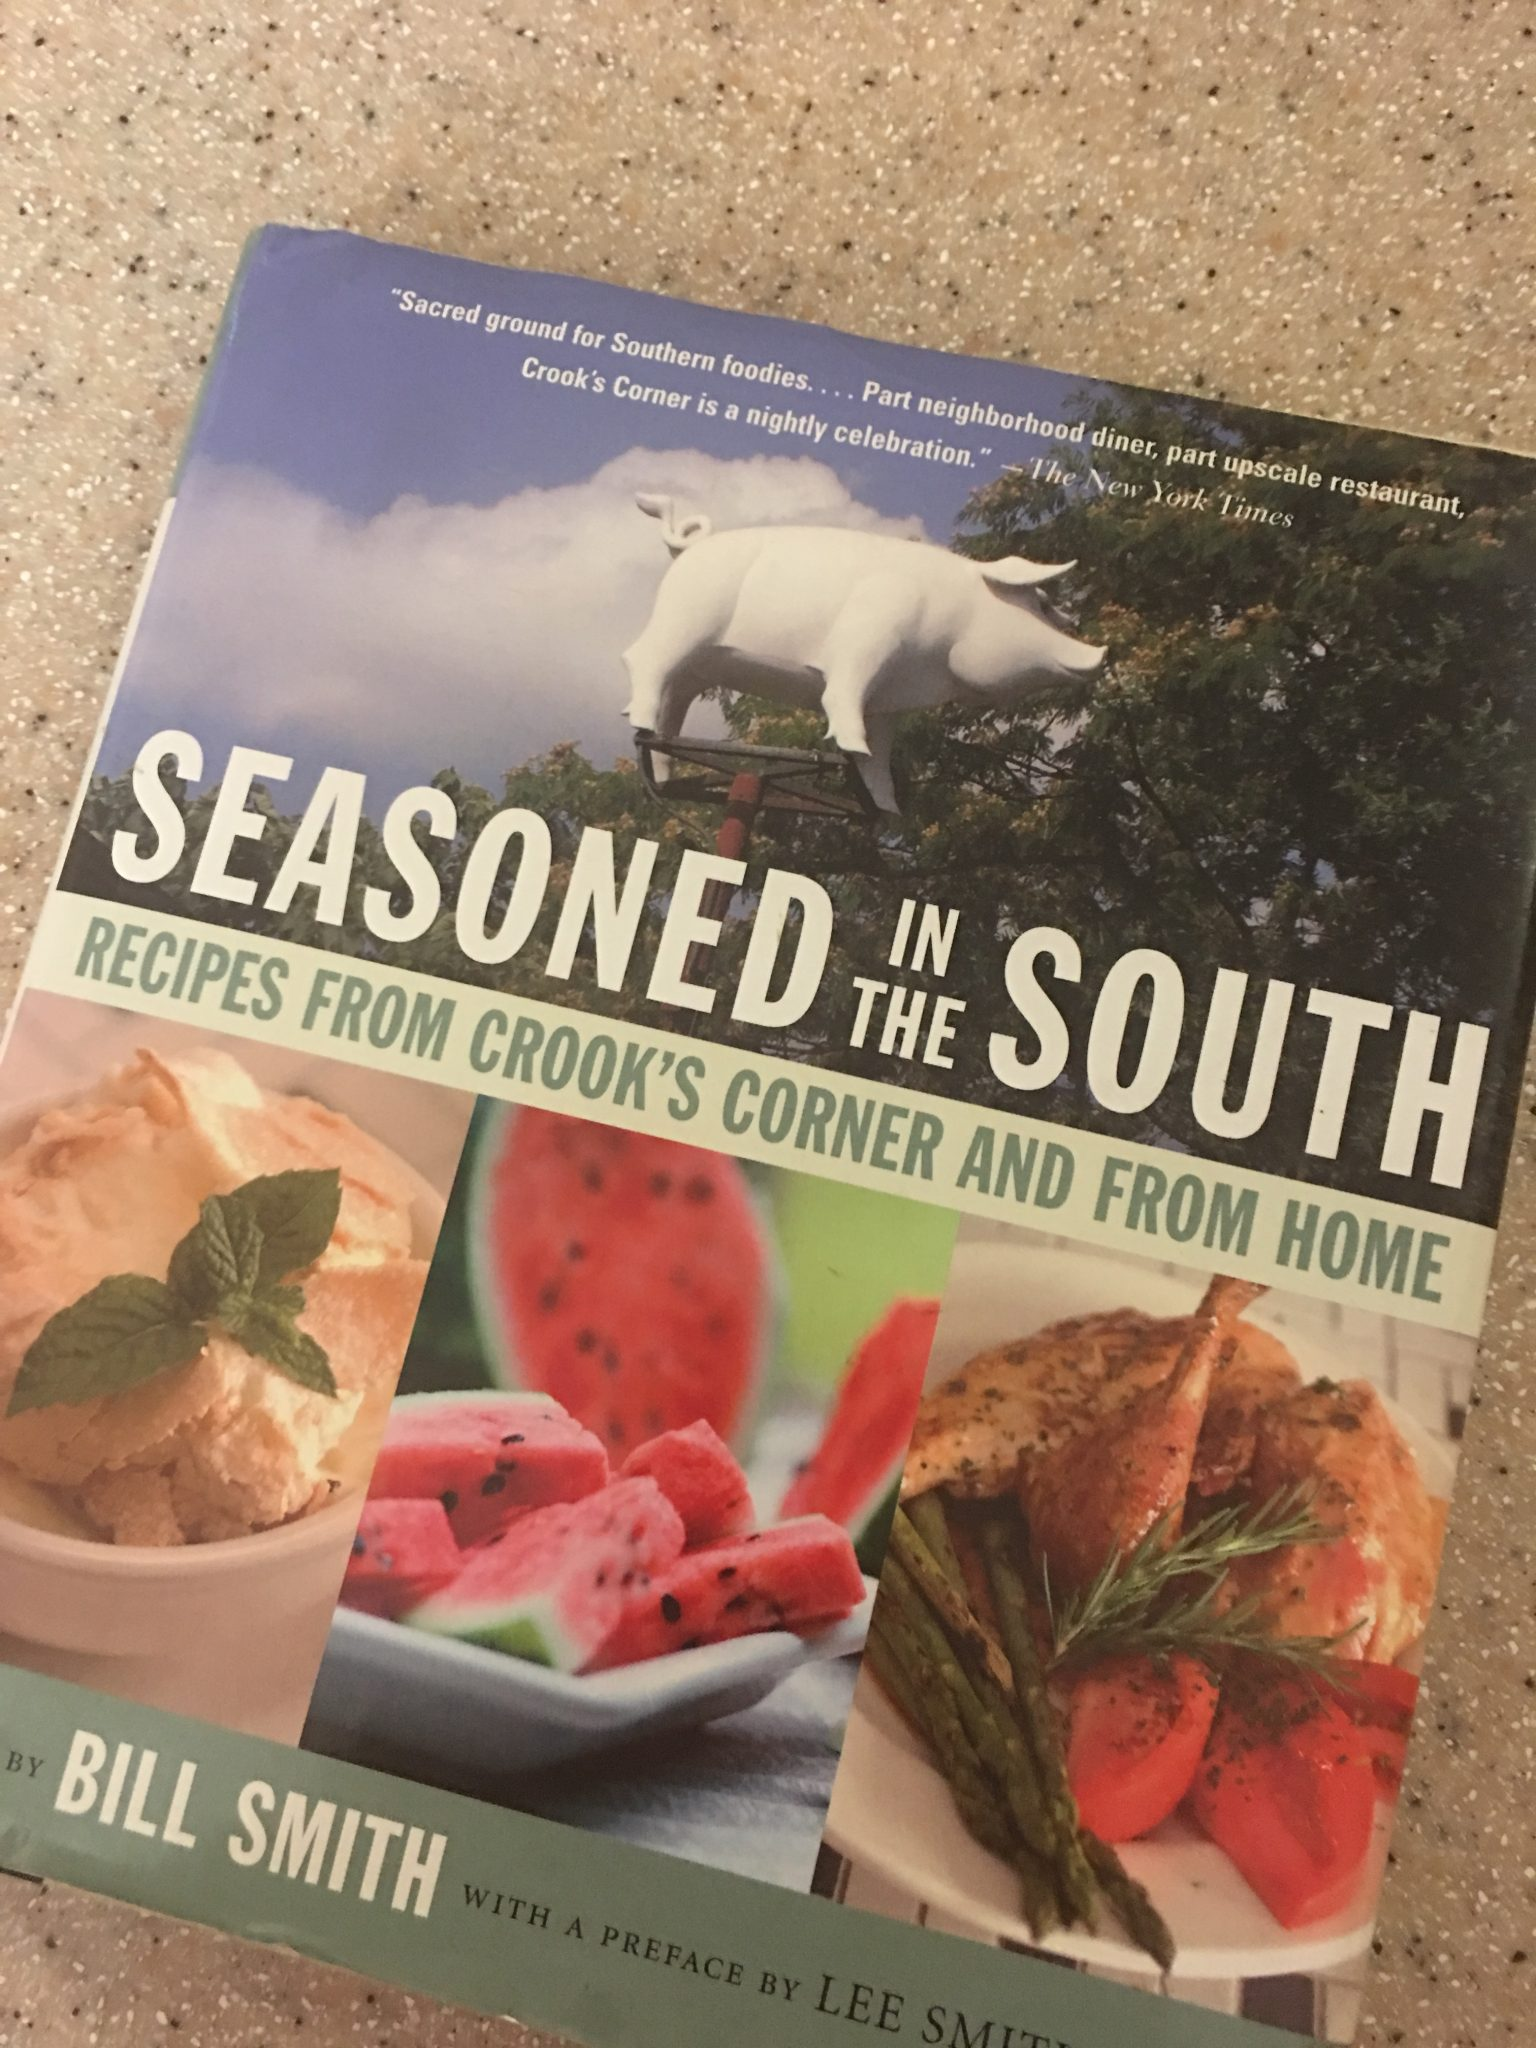 Cover of Bill Smith's first cookbook, Seasoned in the South, on a speckled countertop, showing the giant pig on display on the roof of Crook's corner, and a few dishes on the cover, including Bill's Good Banana Pudding with mint sprig and cold fried chicken with watermelon slices on the side